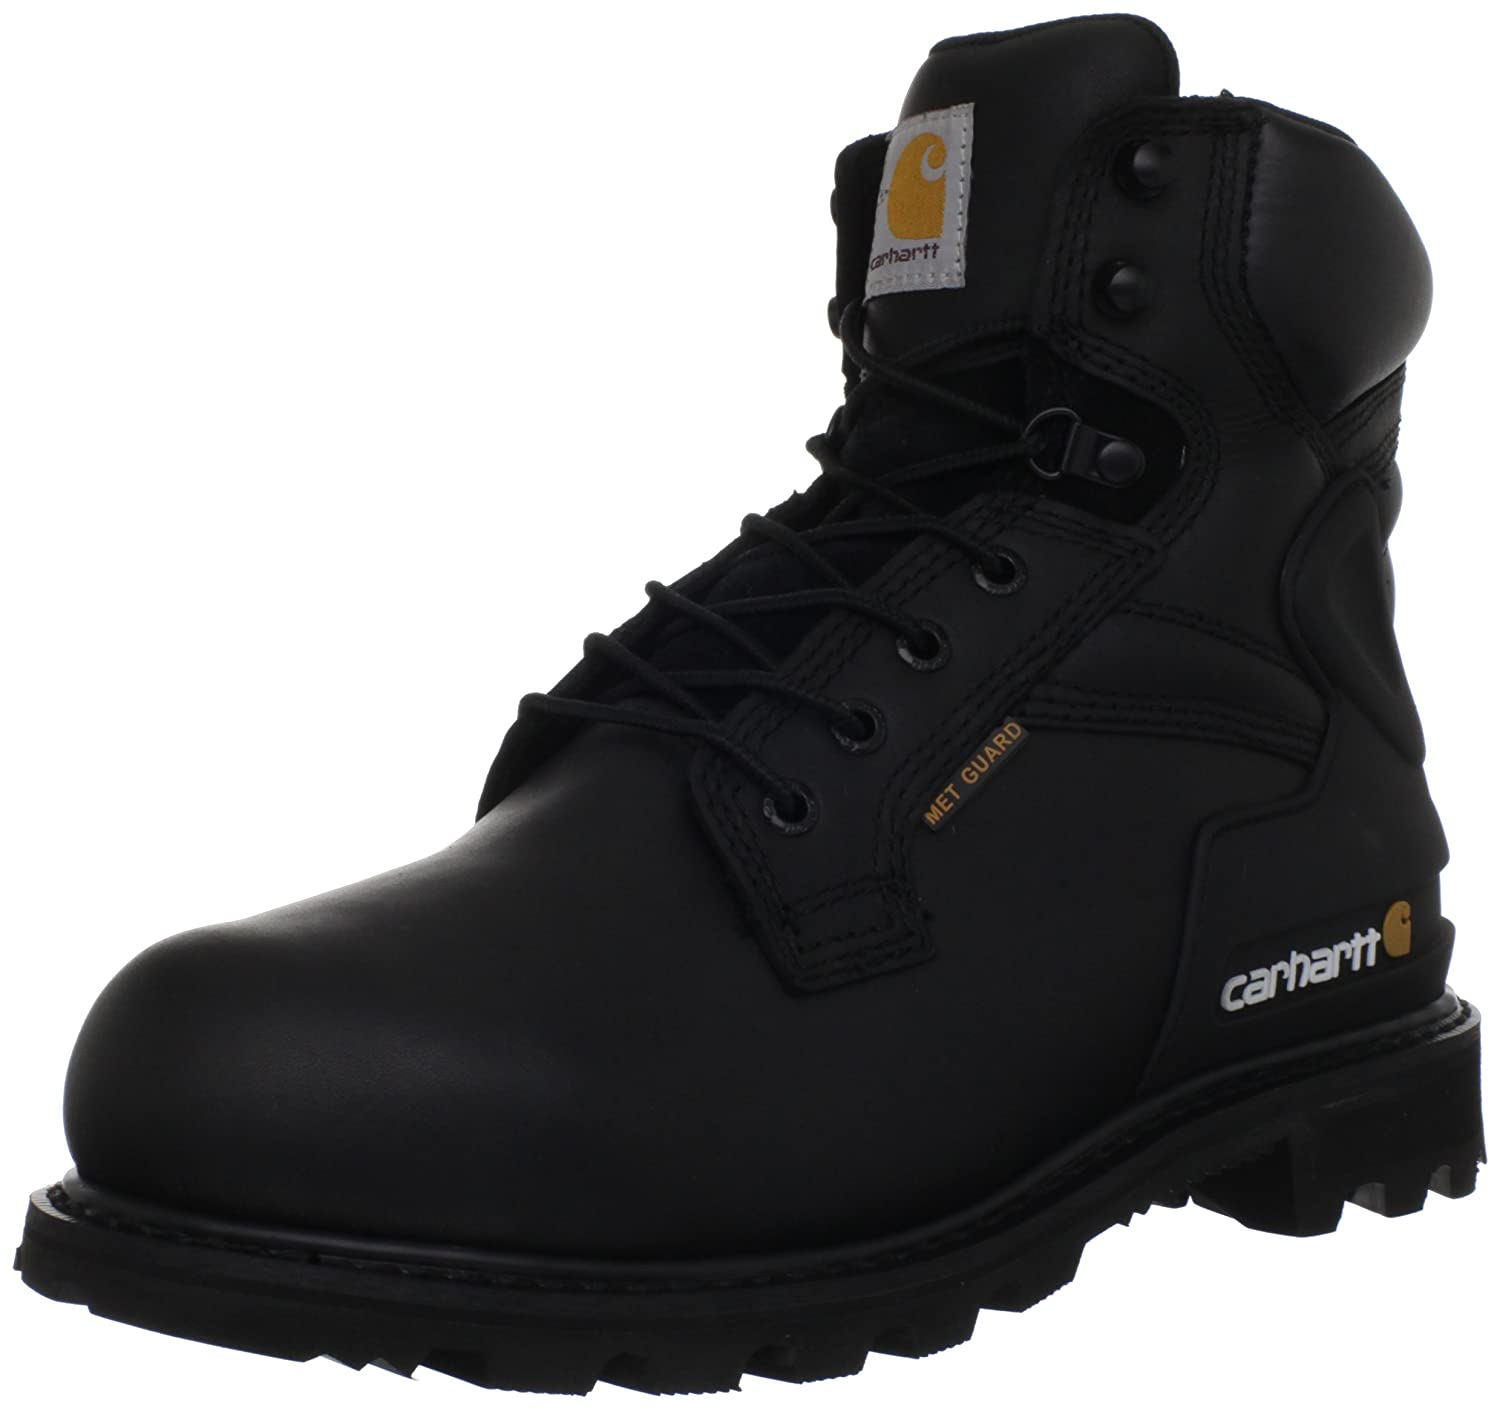 Carhartt メンズ B007UXO7G8 9 2E US|Black Oil Tanned Black Oil Tanned 9 2E US